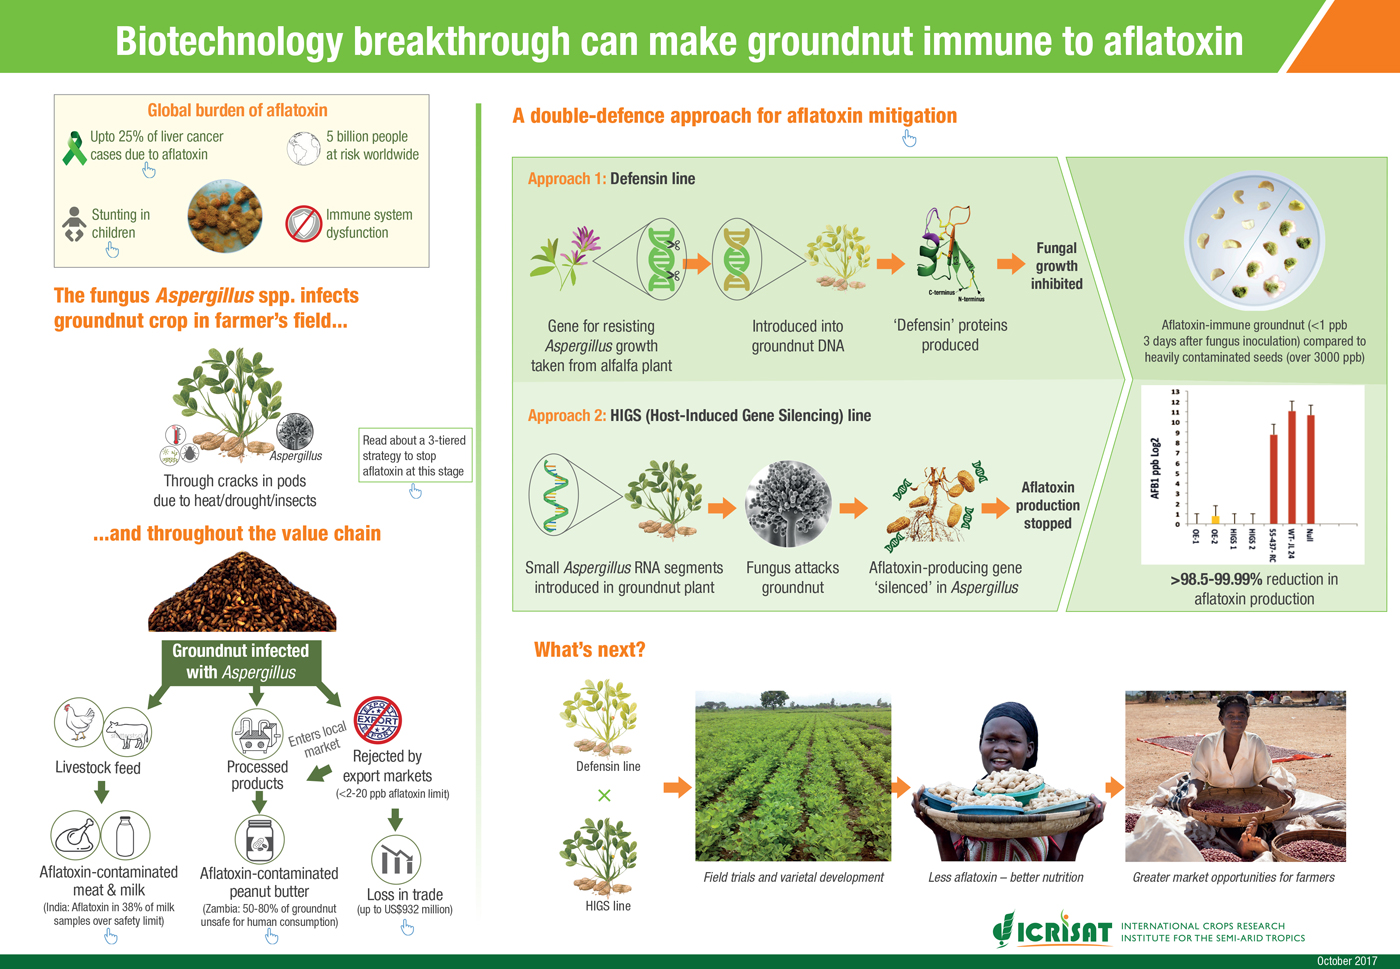 Biotechnology breakthrough can make groundnut immune to aflatoxin